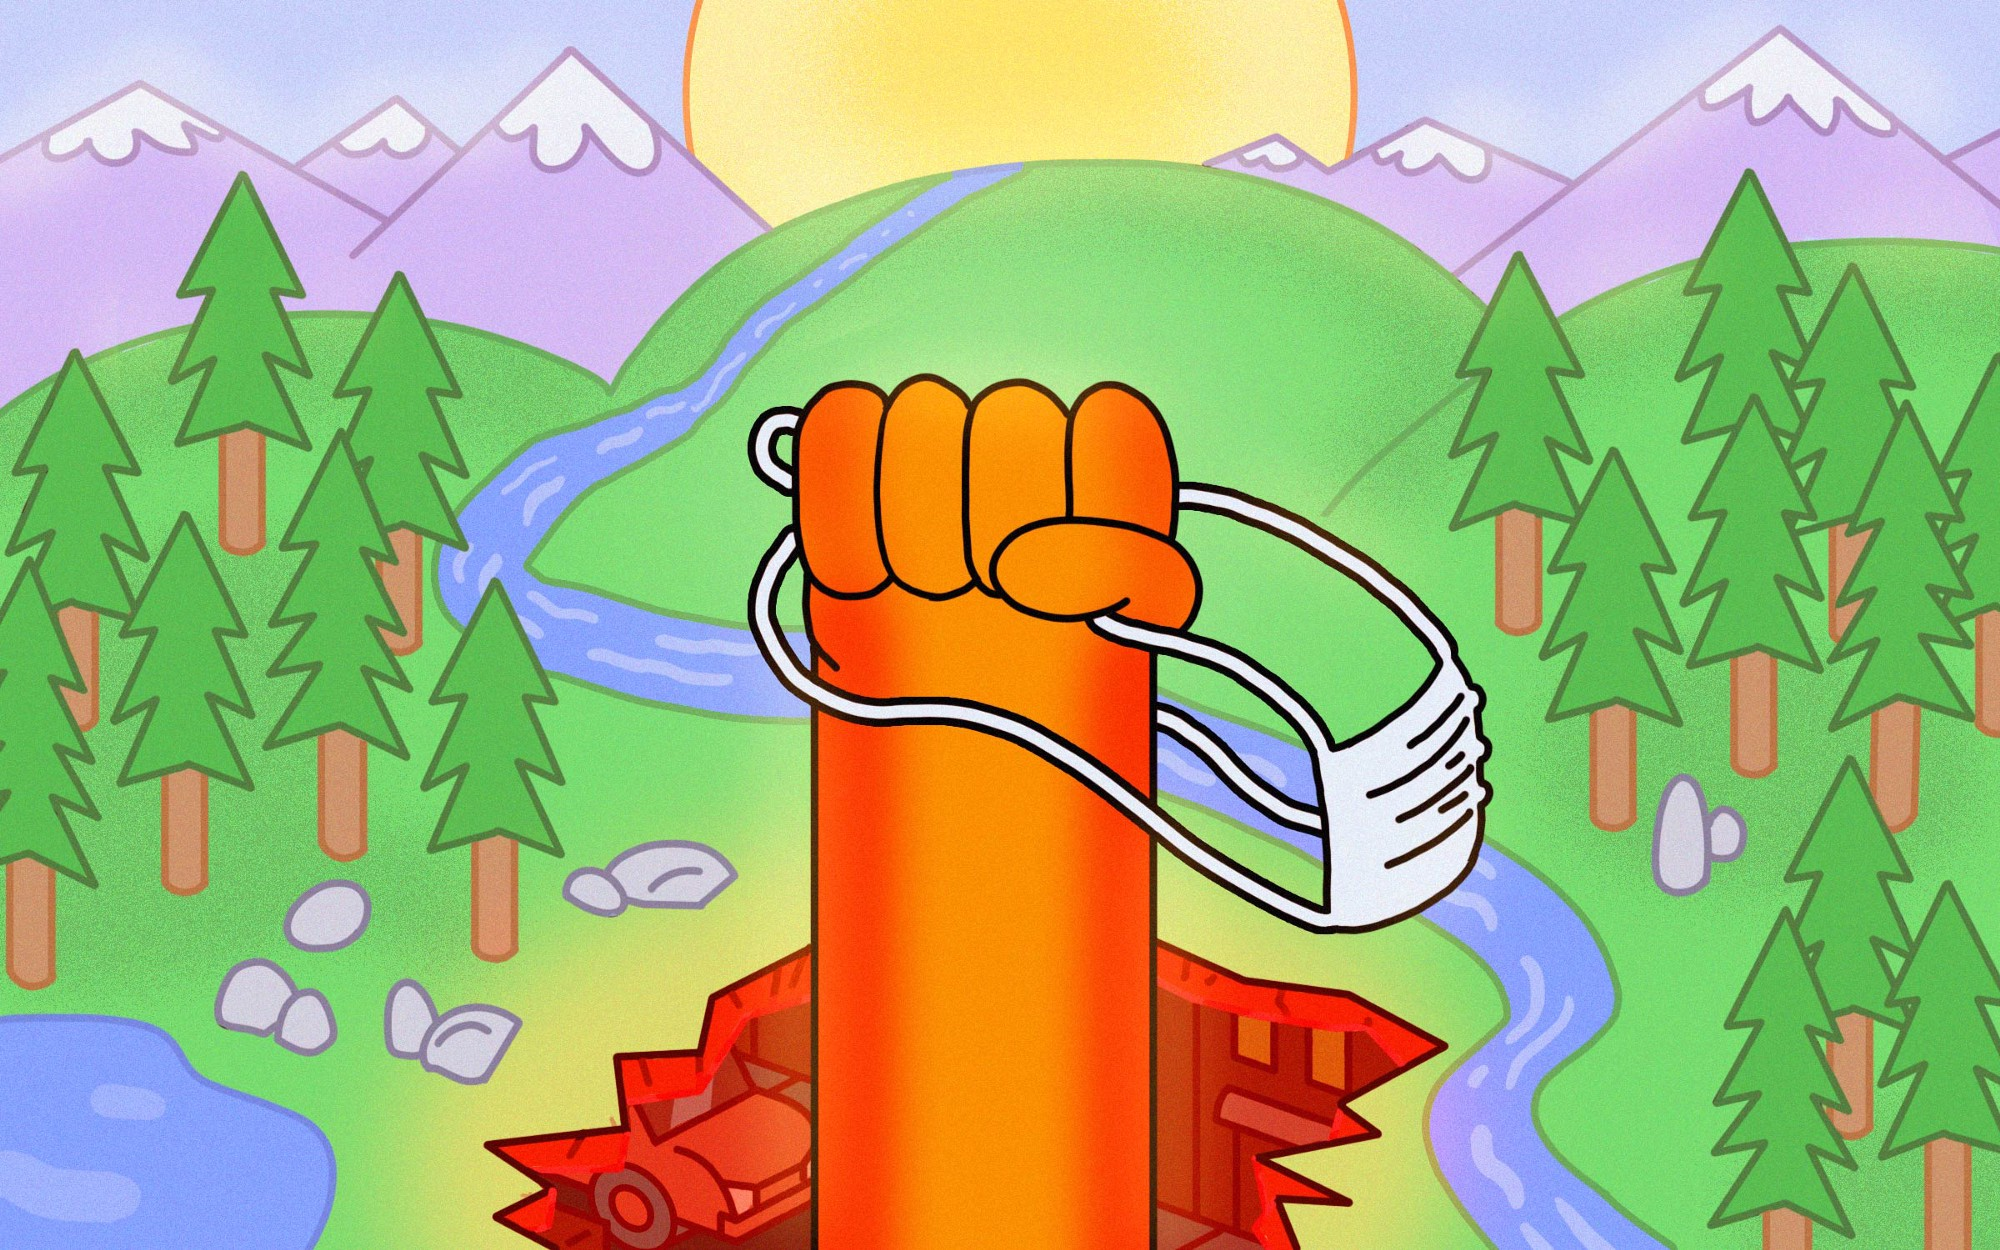 An illustration of a fist up holding a face mask, with a peaceful landscape background.